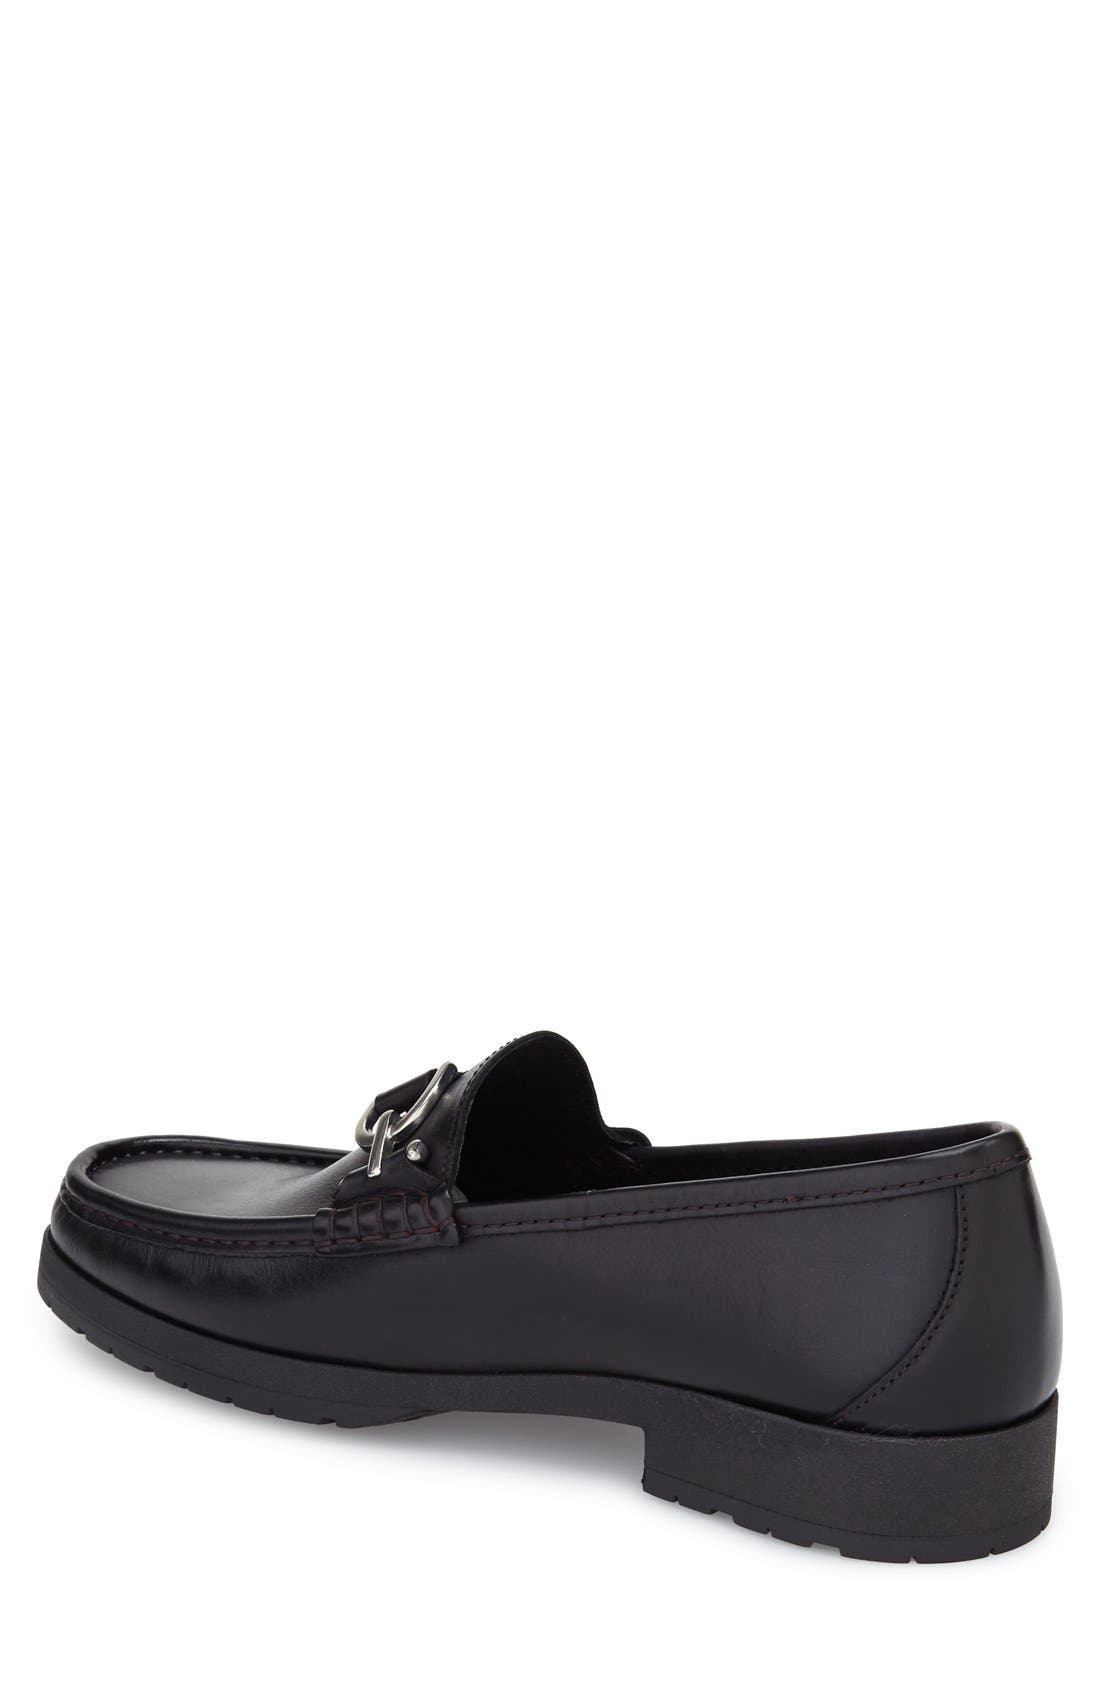 Lelio Bit Loafer,                             Alternate thumbnail 2, color,                             001